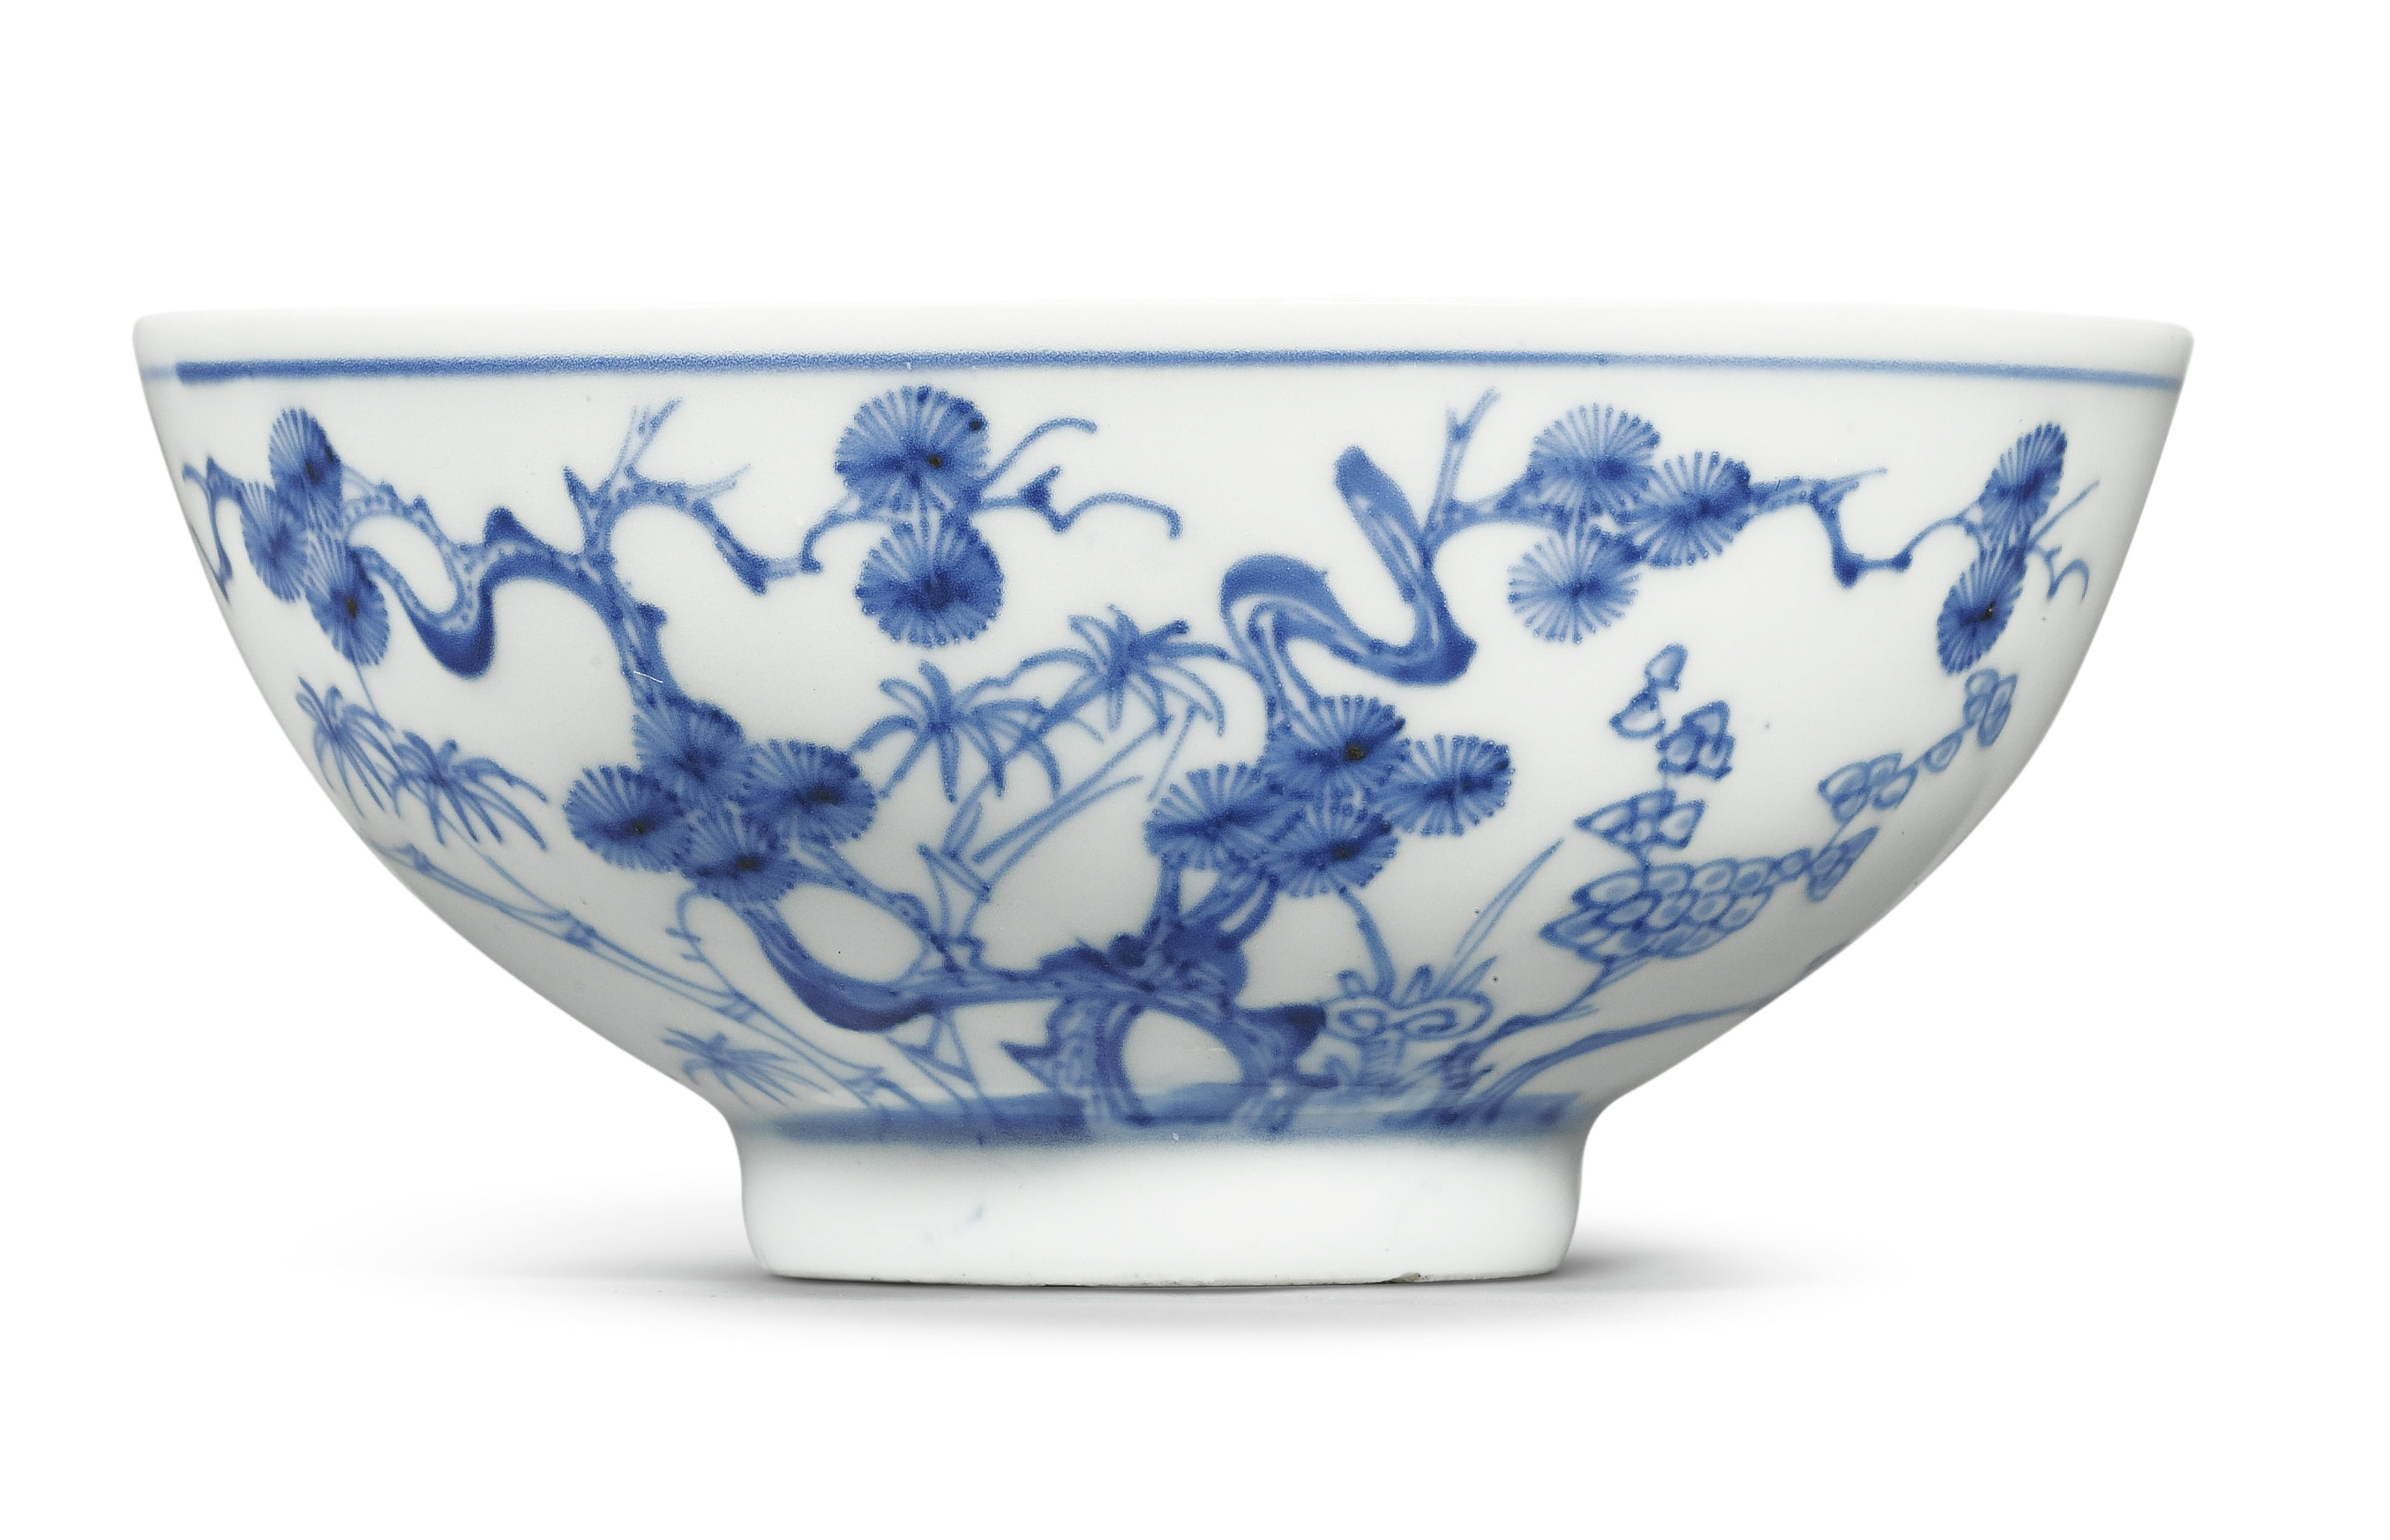 Blue And White Three Friends Bowl China Yongzheng Mark And Period Sotheby S Fine Chinese Ceramics And Works Of Art 09 Blue And White Chinese Ceramics Bowl